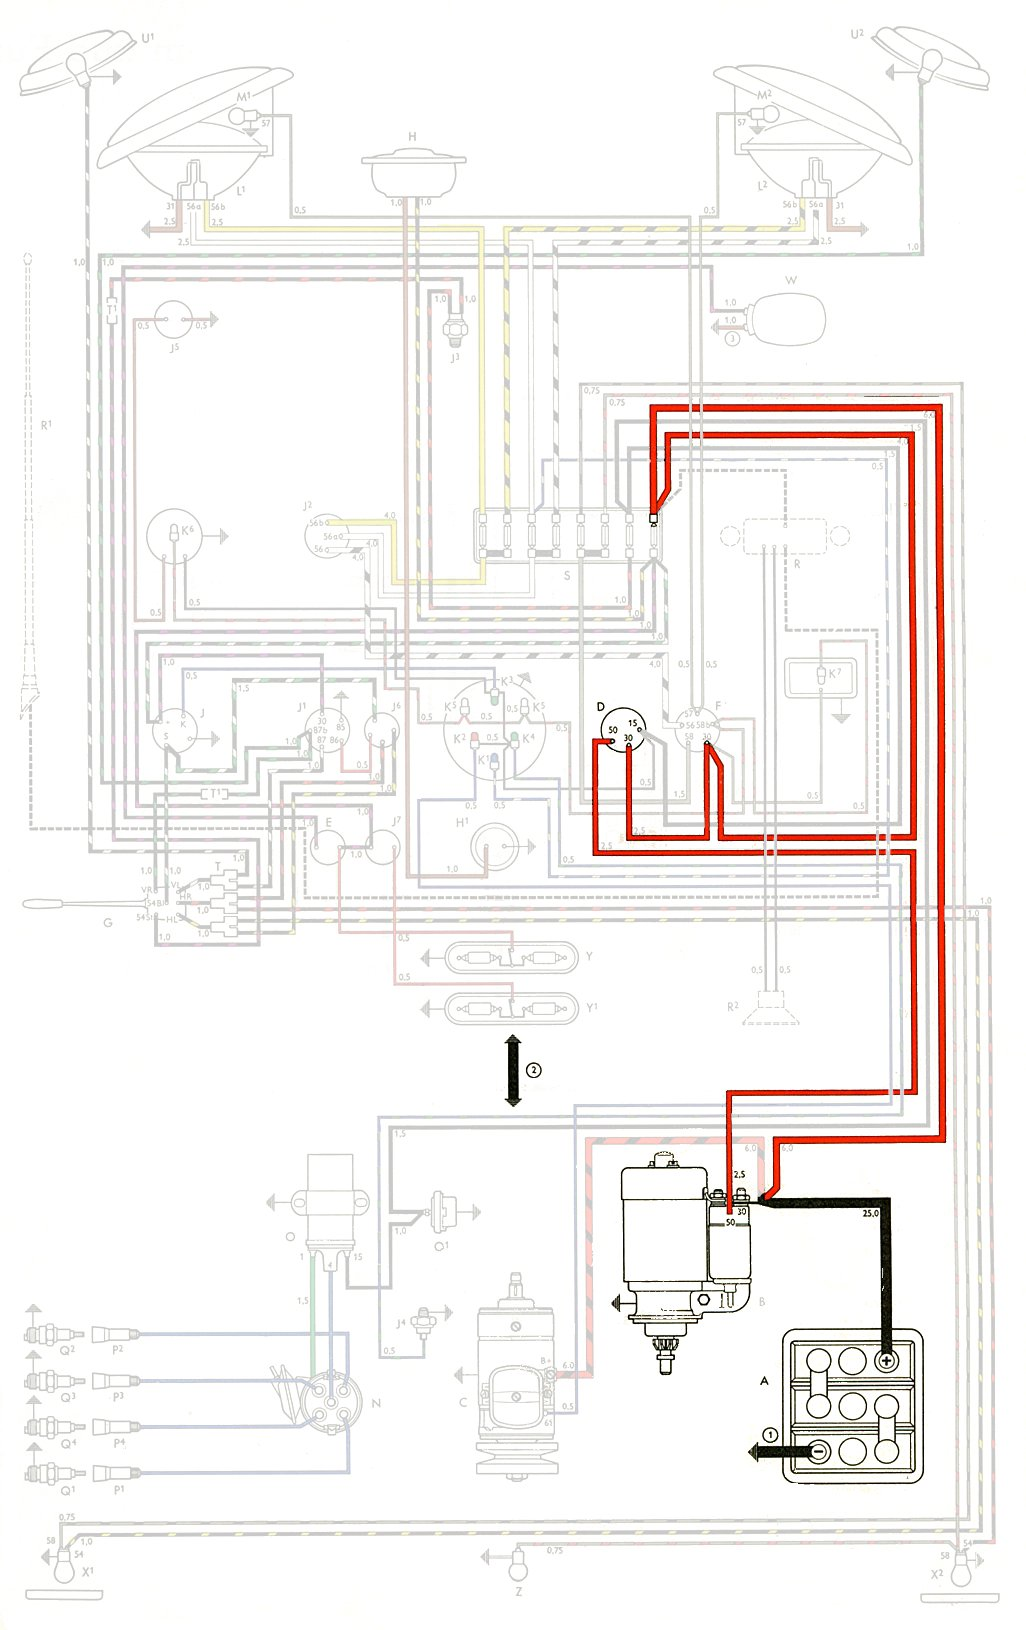 1969 vw starter wiring diagram